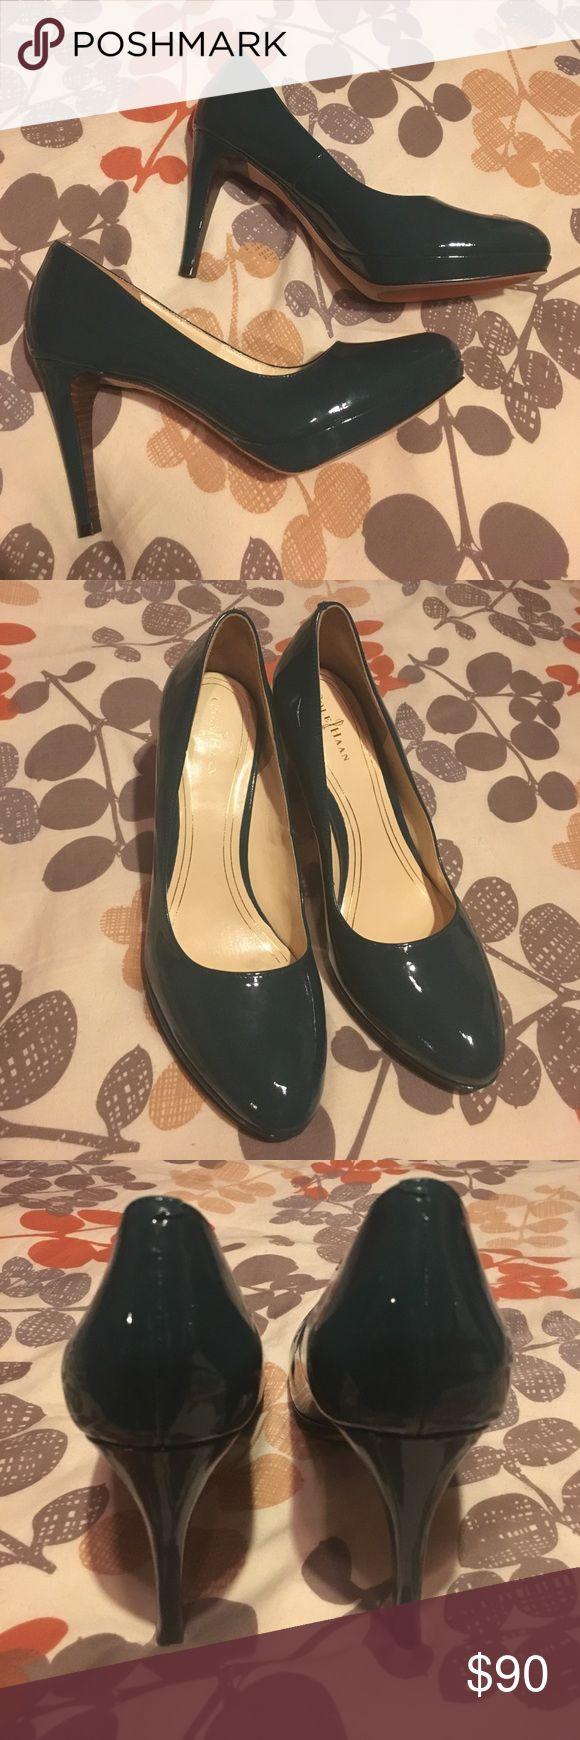 Cole Haan pumps green size 8.5 Nike Air These Cole Haan green heels look brand new like they have never been worn - no box no dust bag included - size 8.5 size - Cole Haan Heels with NikeAir - bundle with other items for lower price 👍🏻🎉 Cole Haan Shoes Heels